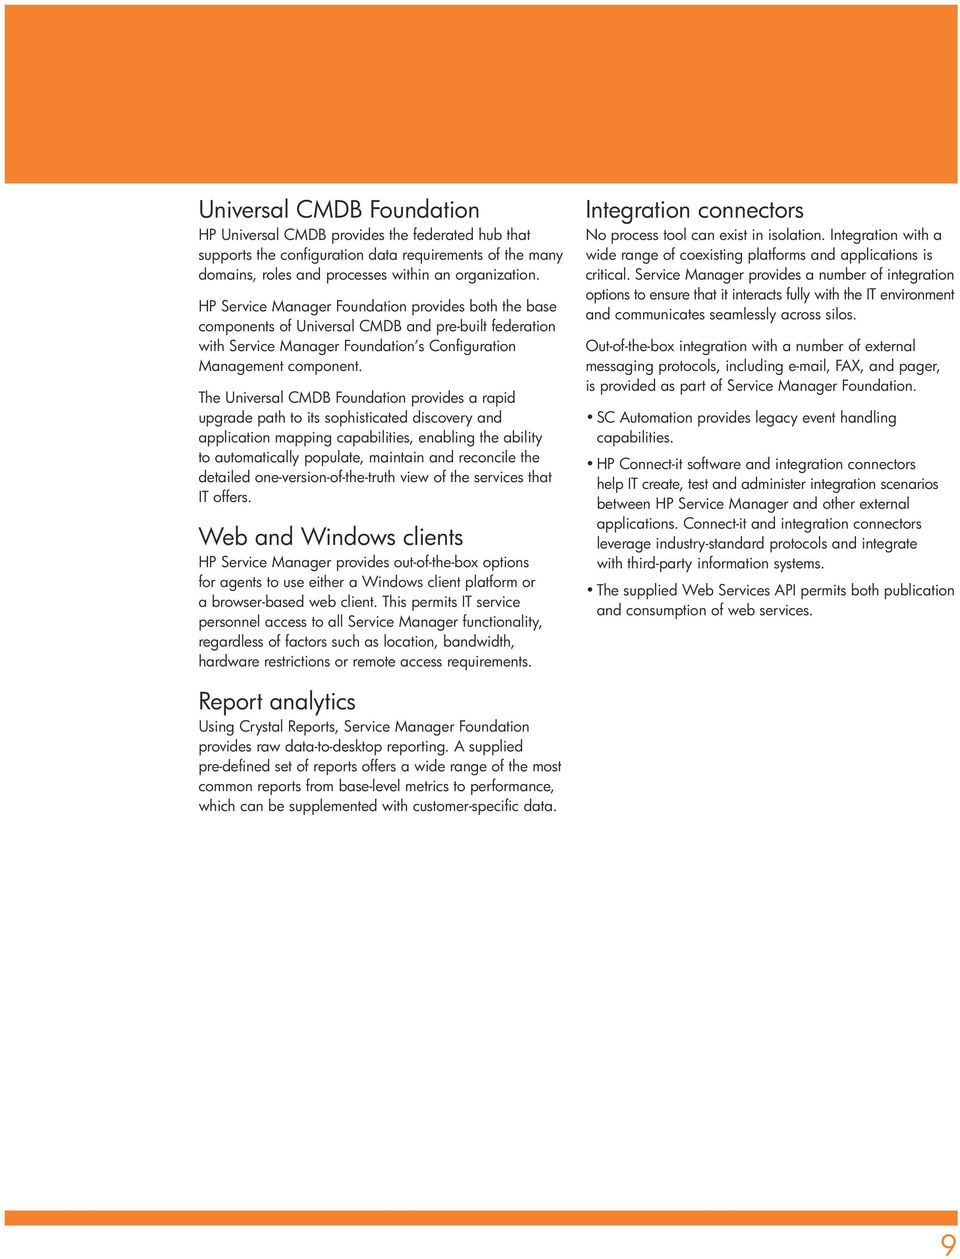 The Universal CMDB Foundation provides a rapid upgrade path to its sophisticated discovery and application mapping capabilities, enabling the ability to automatically populate, maintain and reconcile